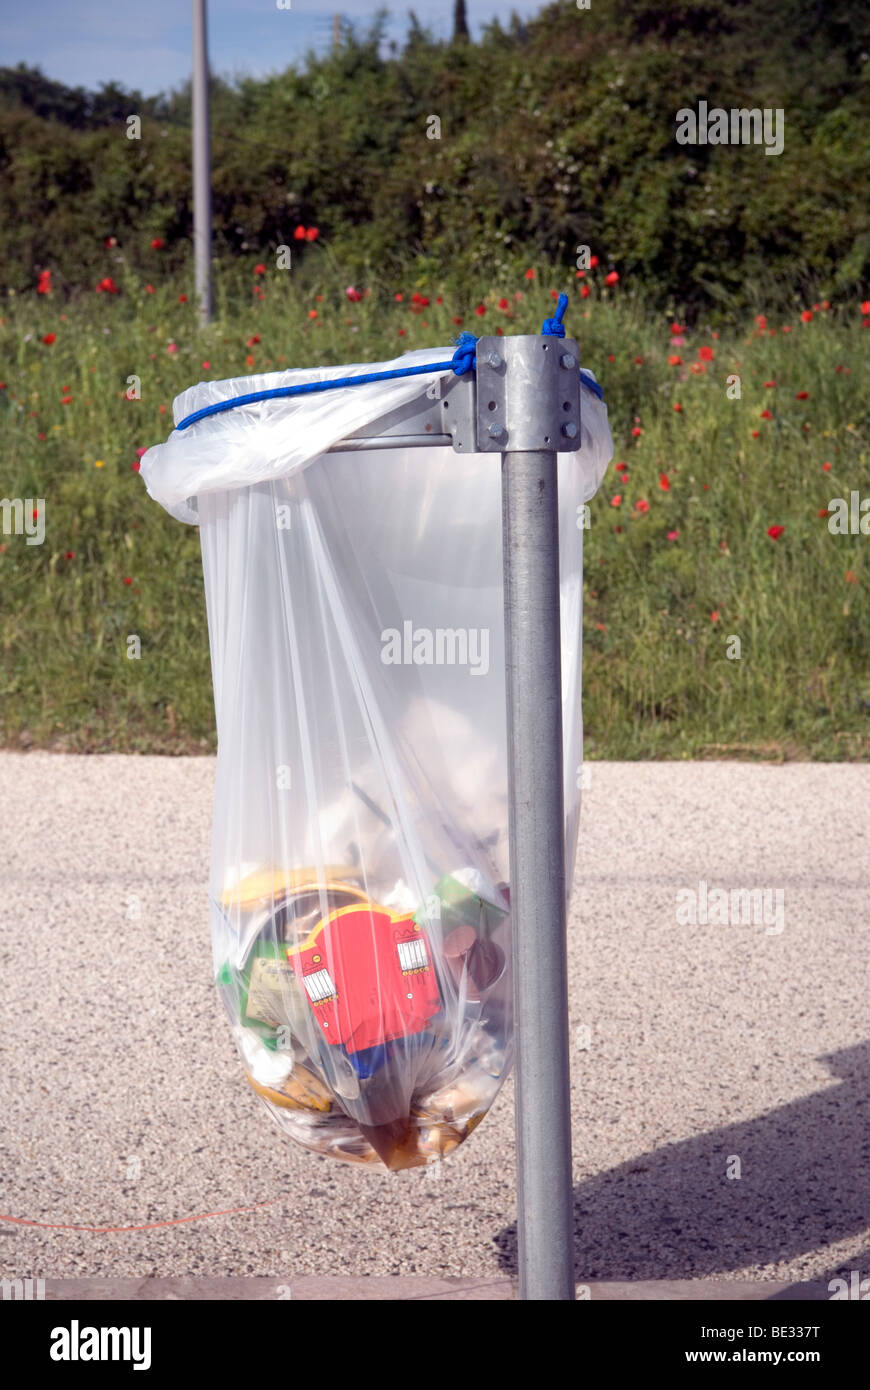 close up of street bin bag with contents - Stock Image